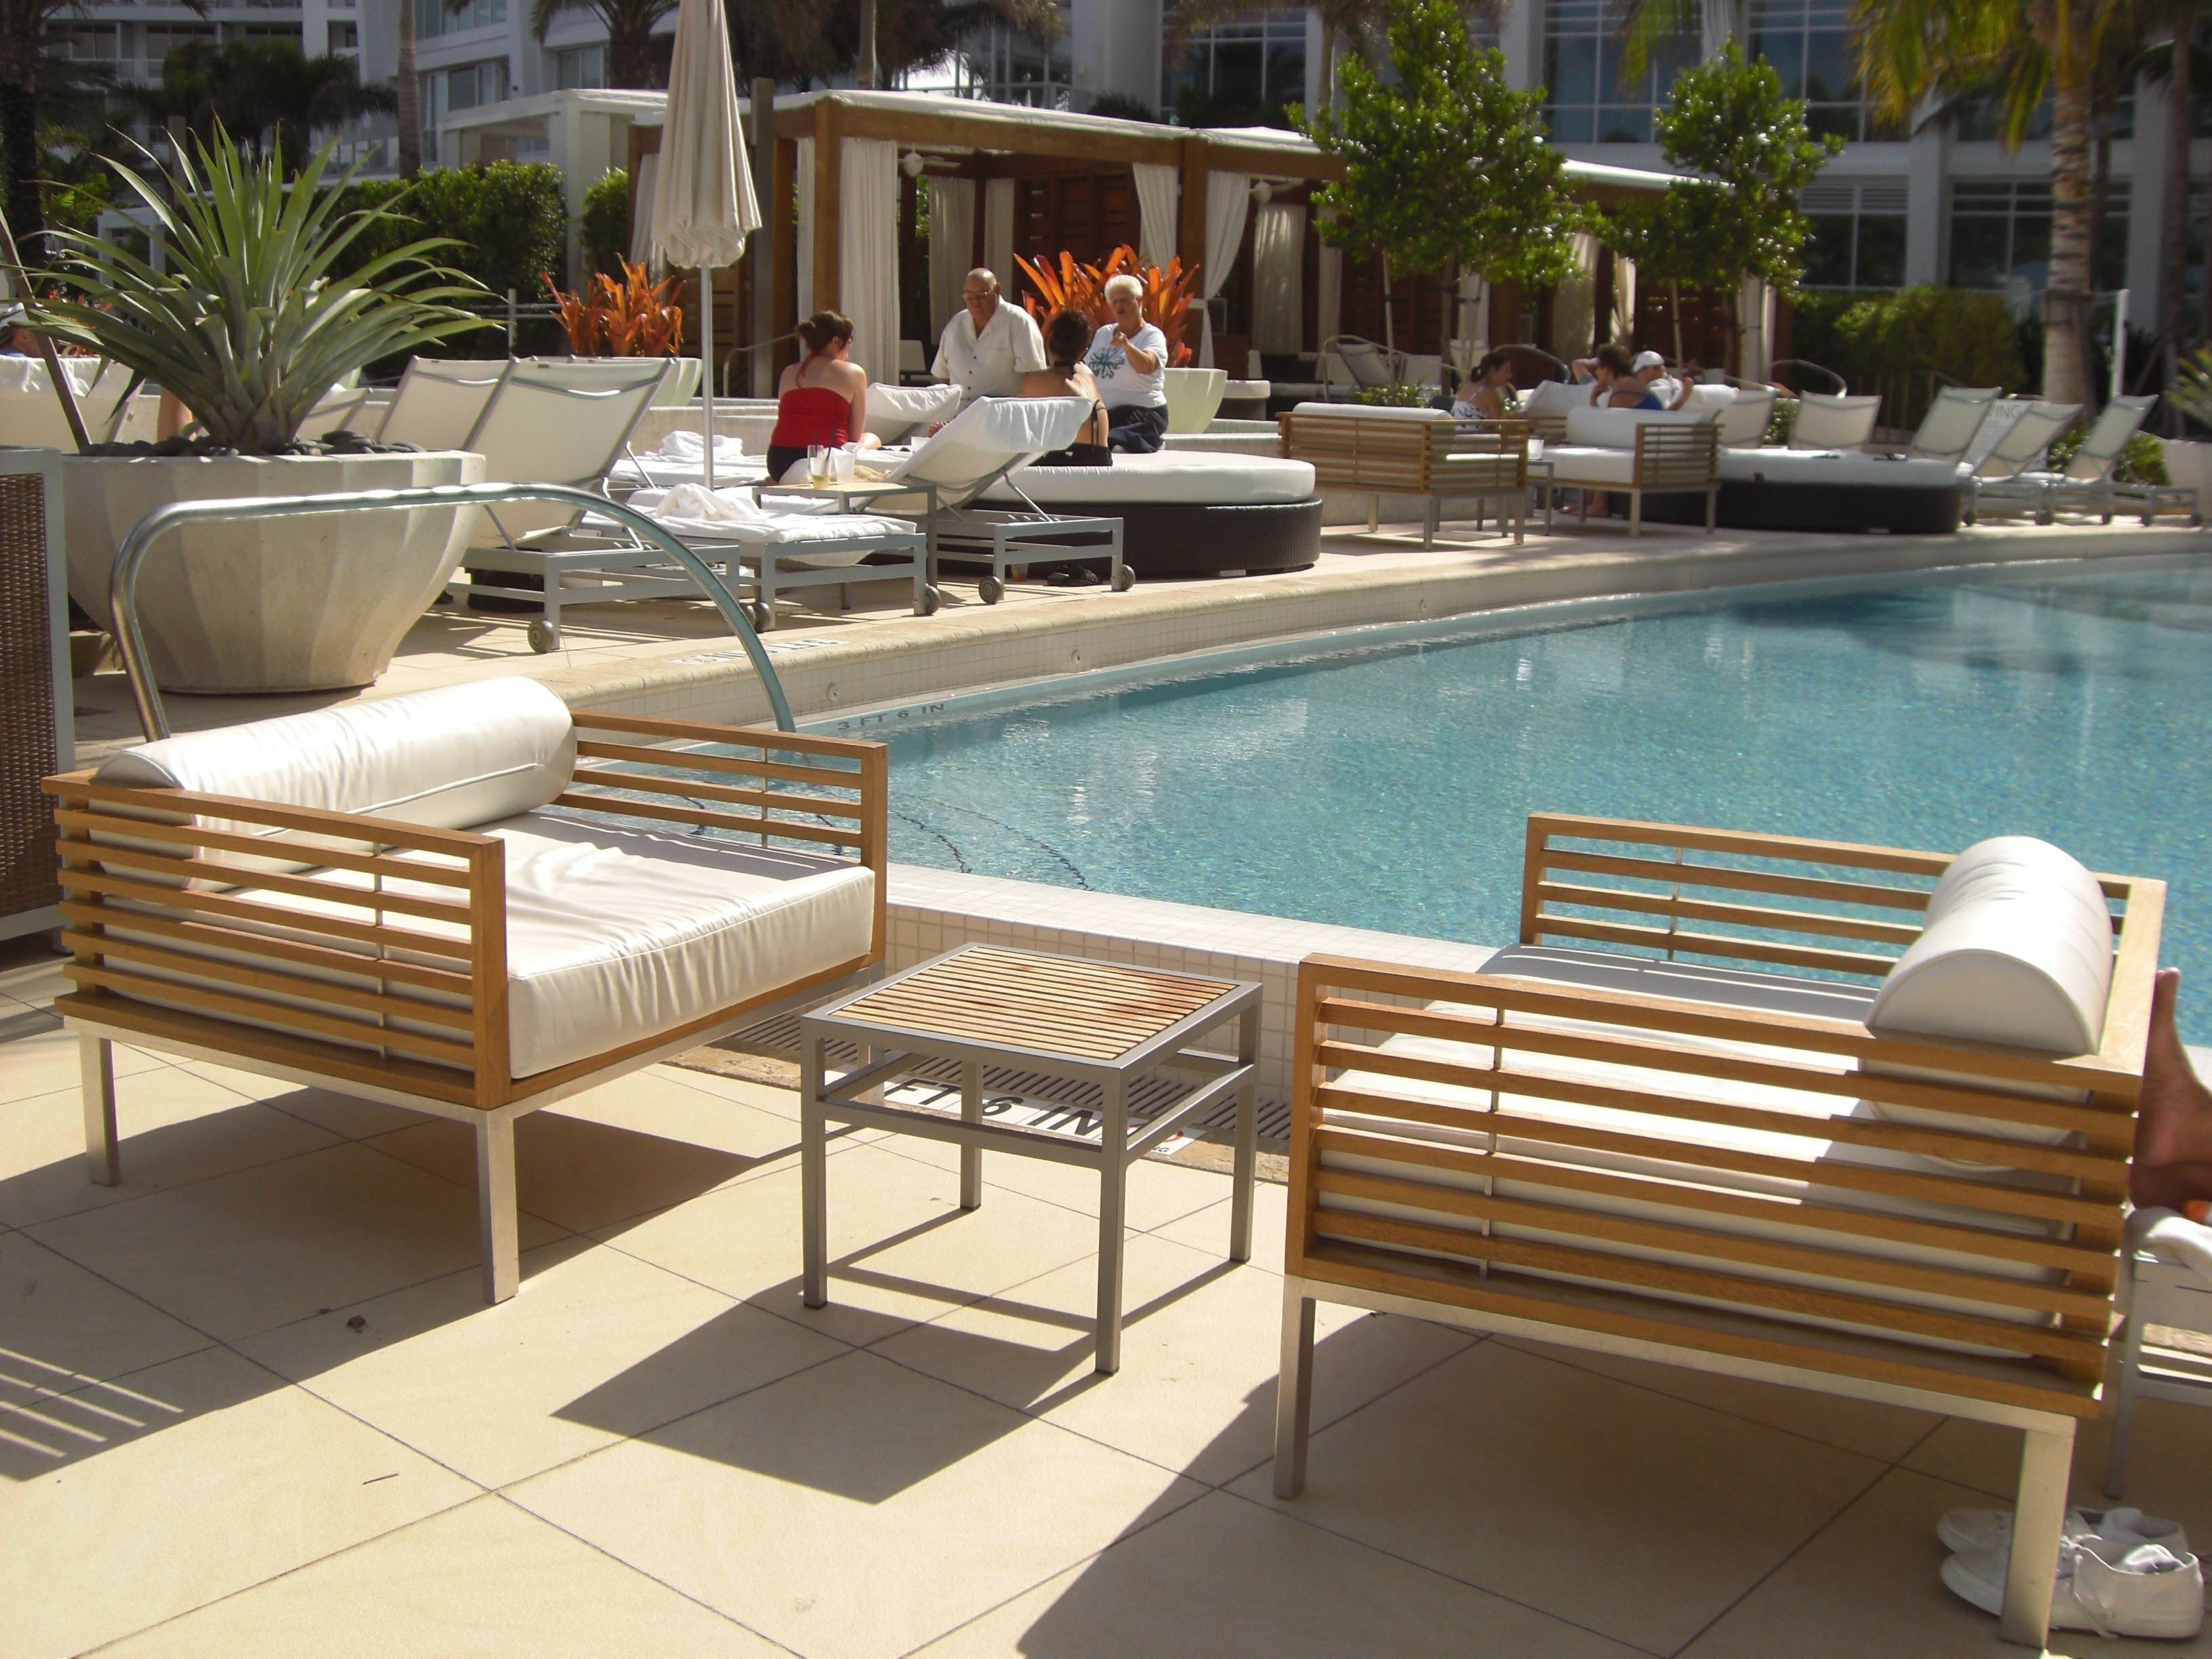 Image of: Furniture Outdoor Pool Furniture Jydesign Marvellous Commercial Throughout Commercial Outdoor Pool Furniture Good Commercial Outdoor Pool Furniture